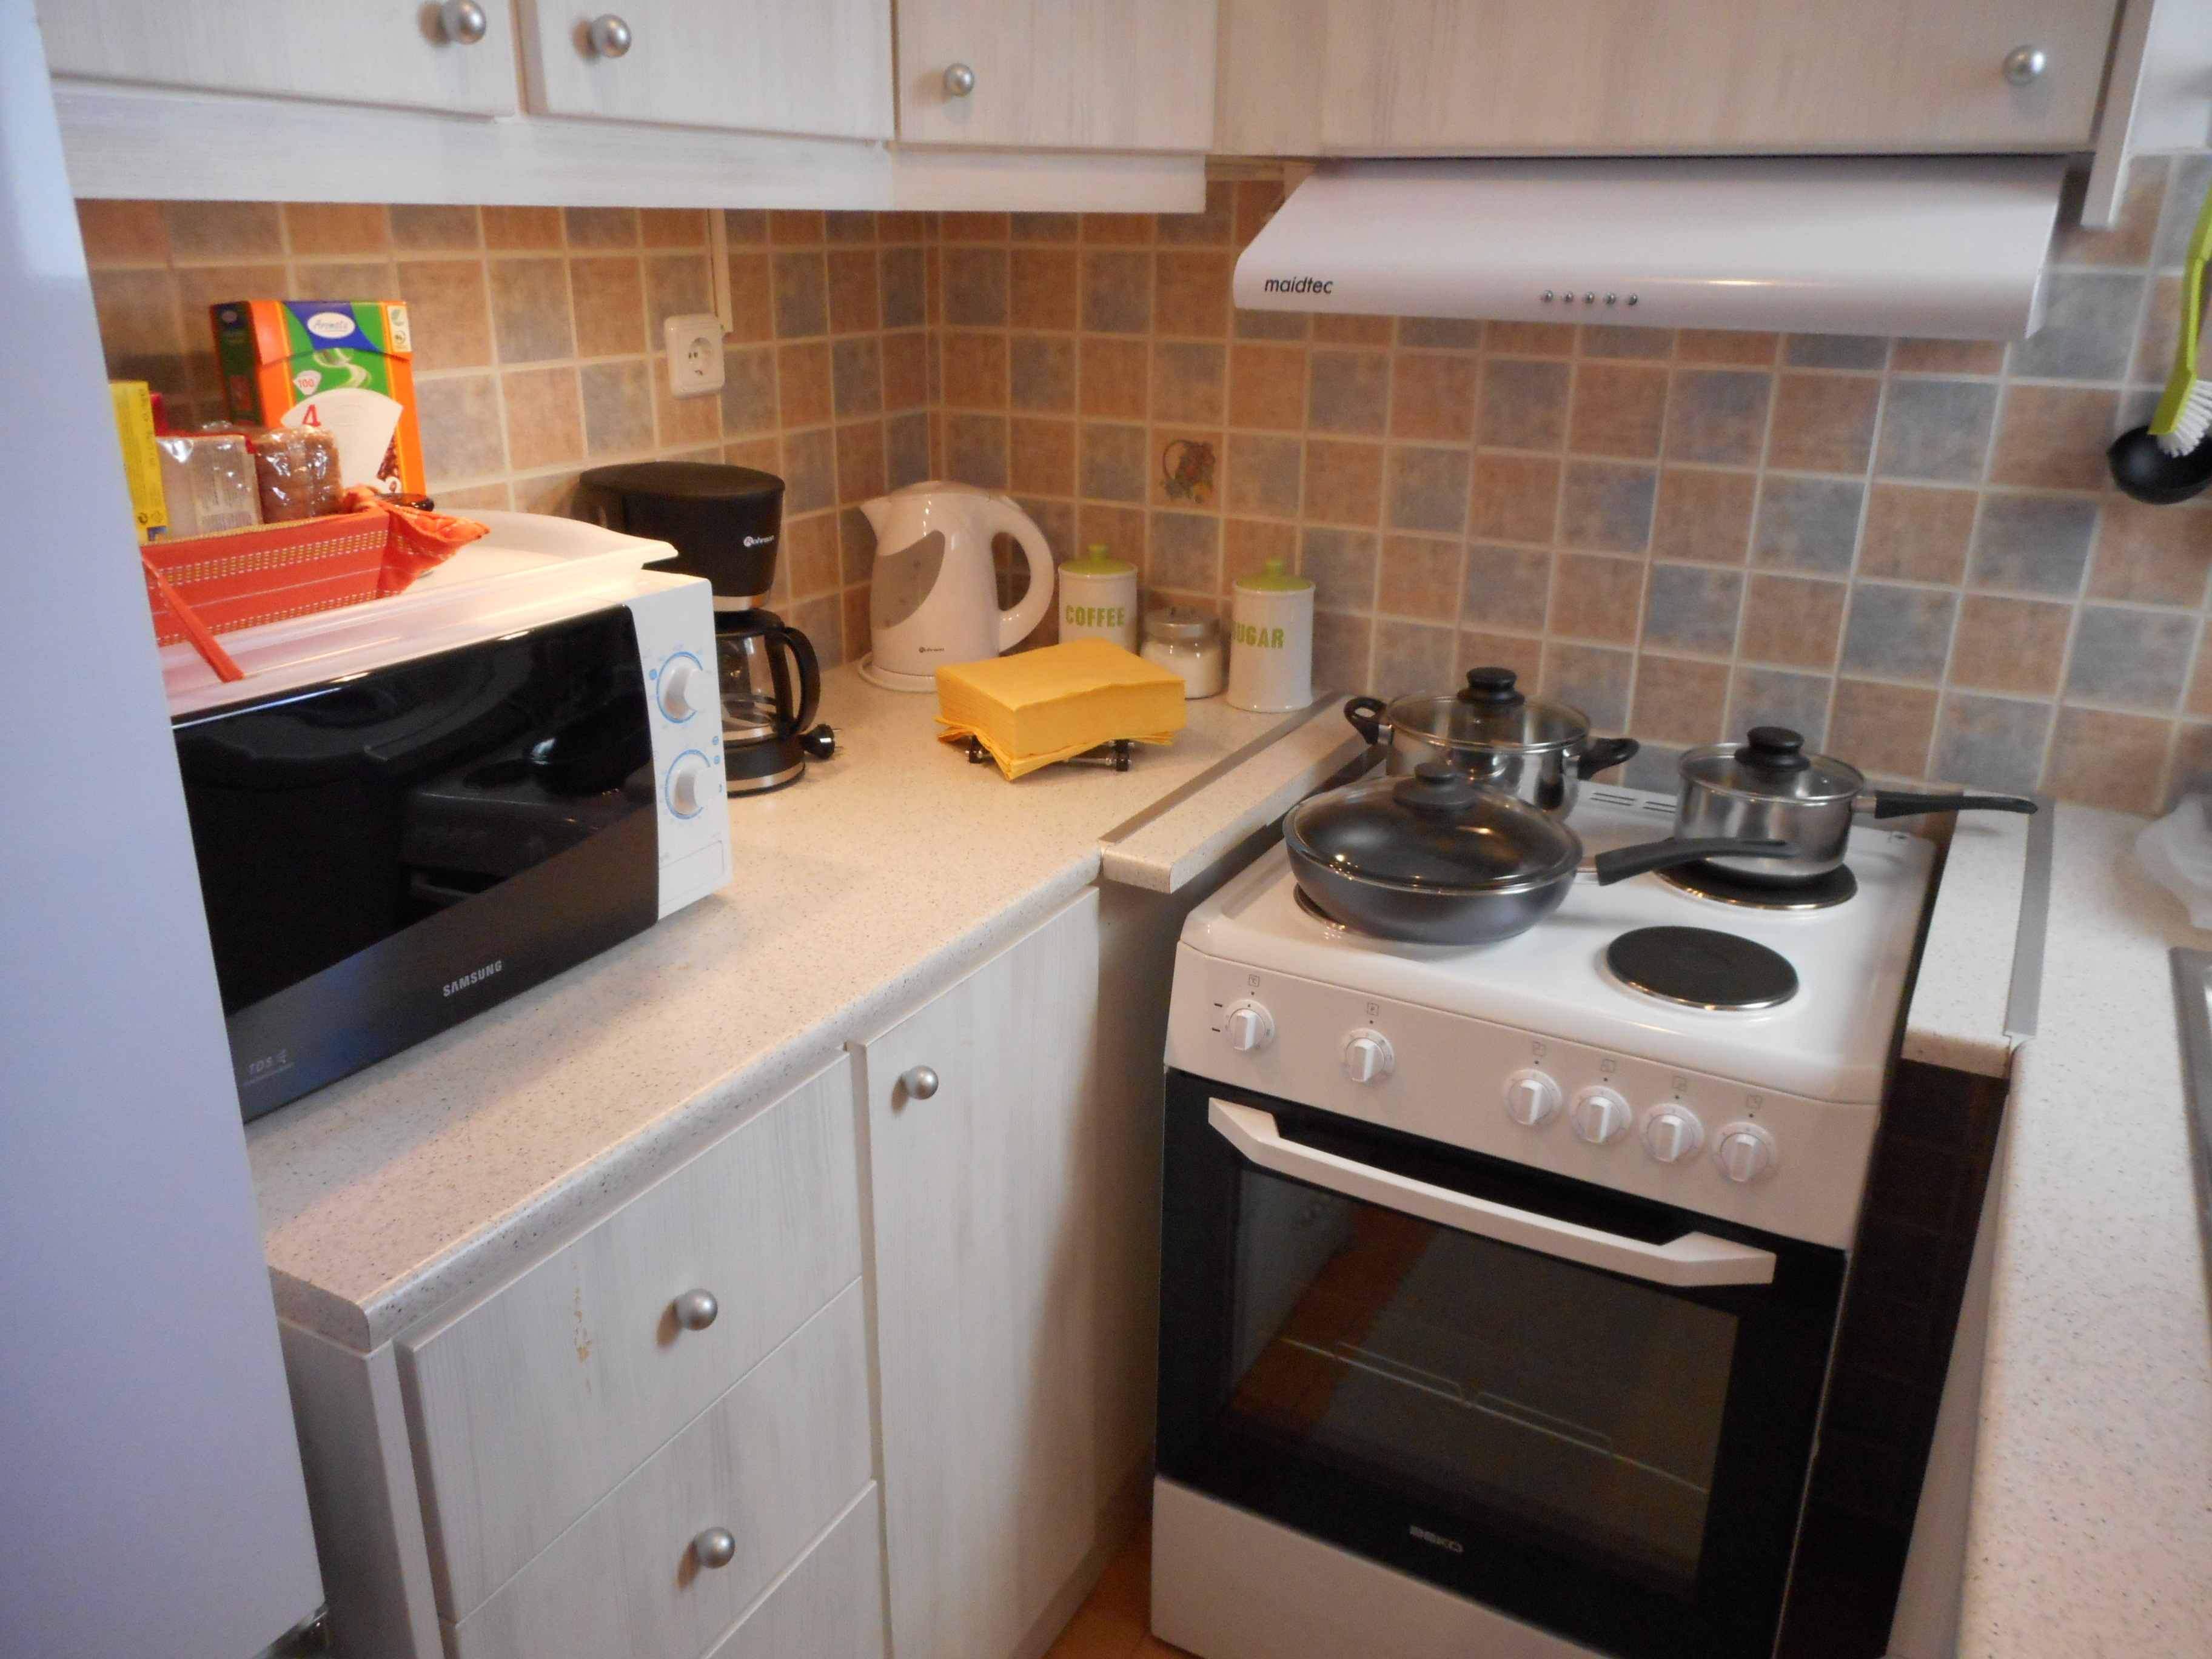 Apartment Ultracareapartments - Athens - City Center - 1 Bedroom Apartment photo 21795772